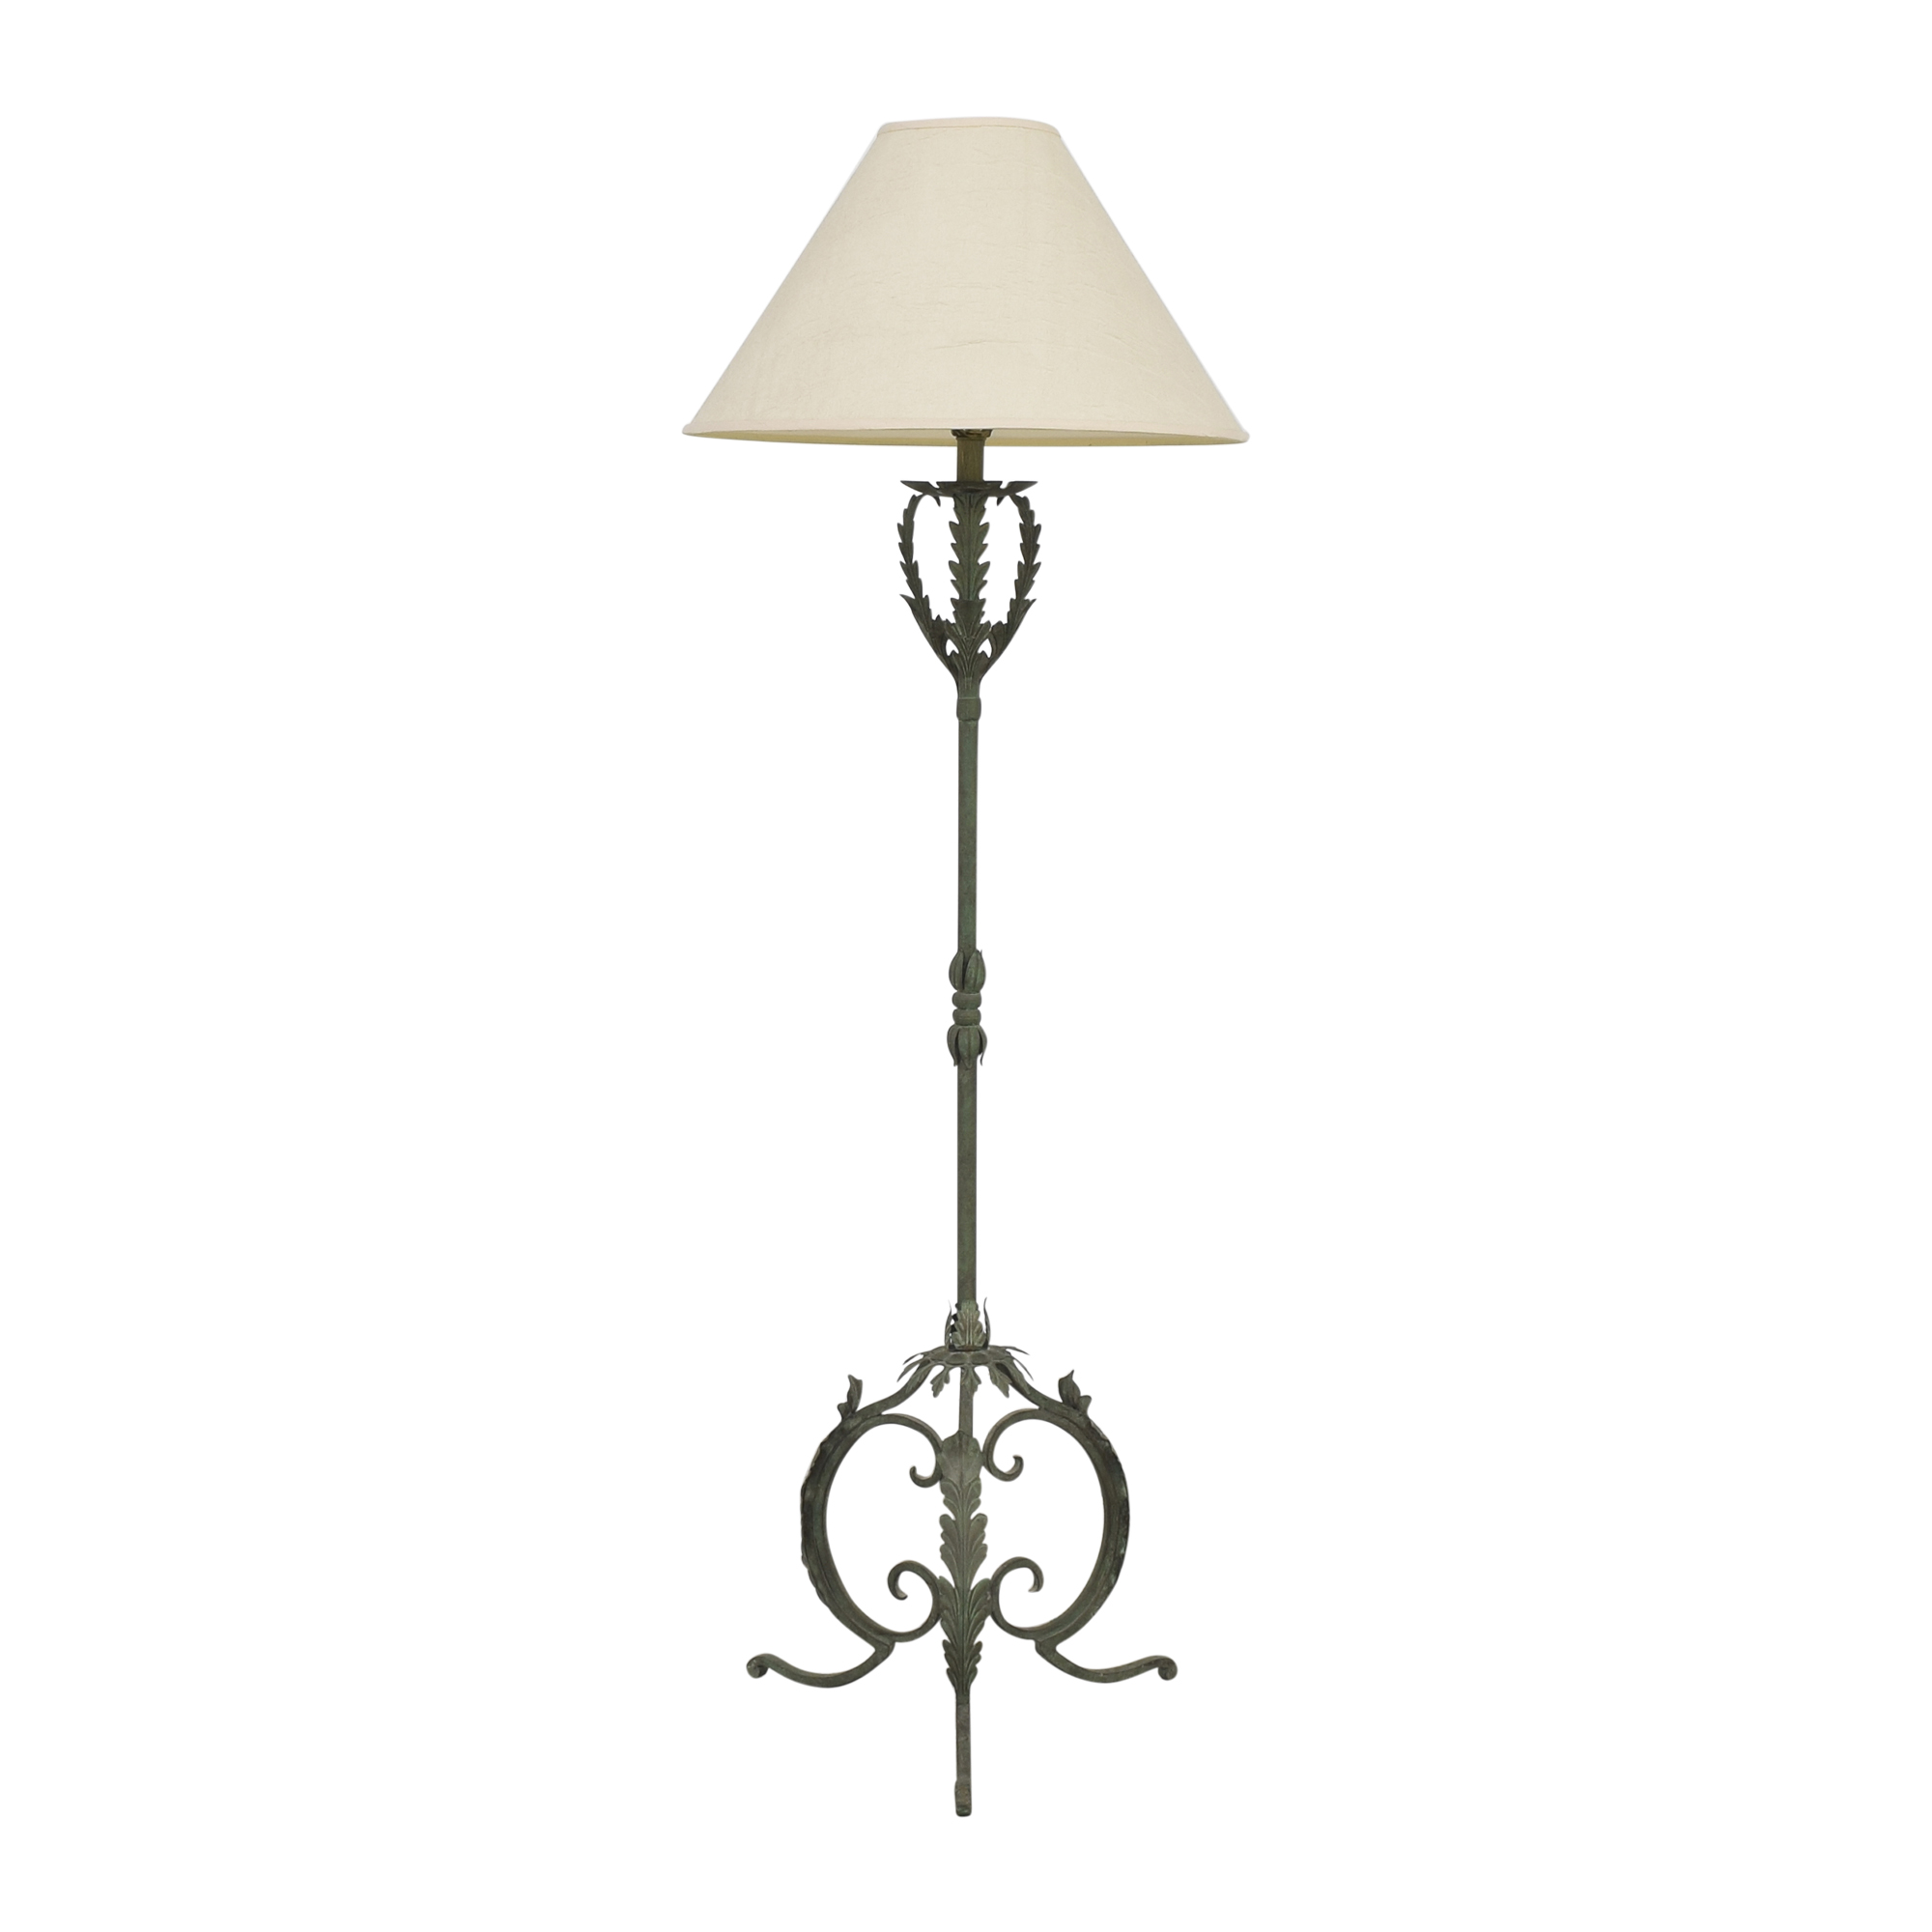 Decorative Floor Lamp pa